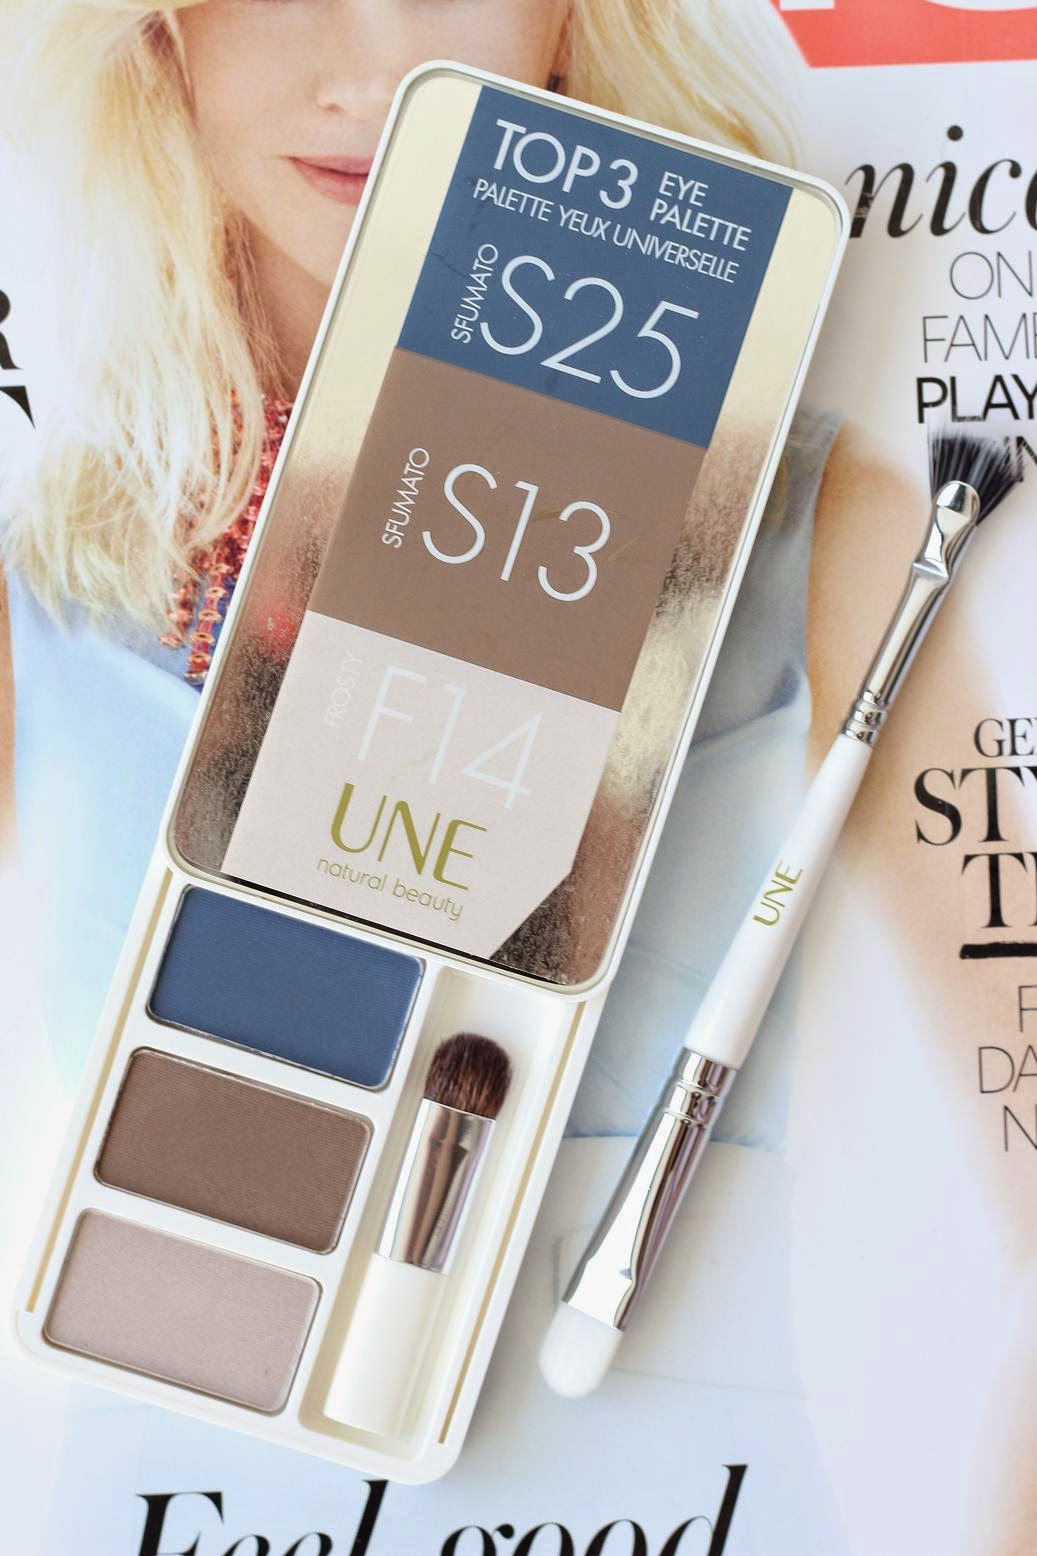 UNE Top 3 Eye Palette Denim Collection